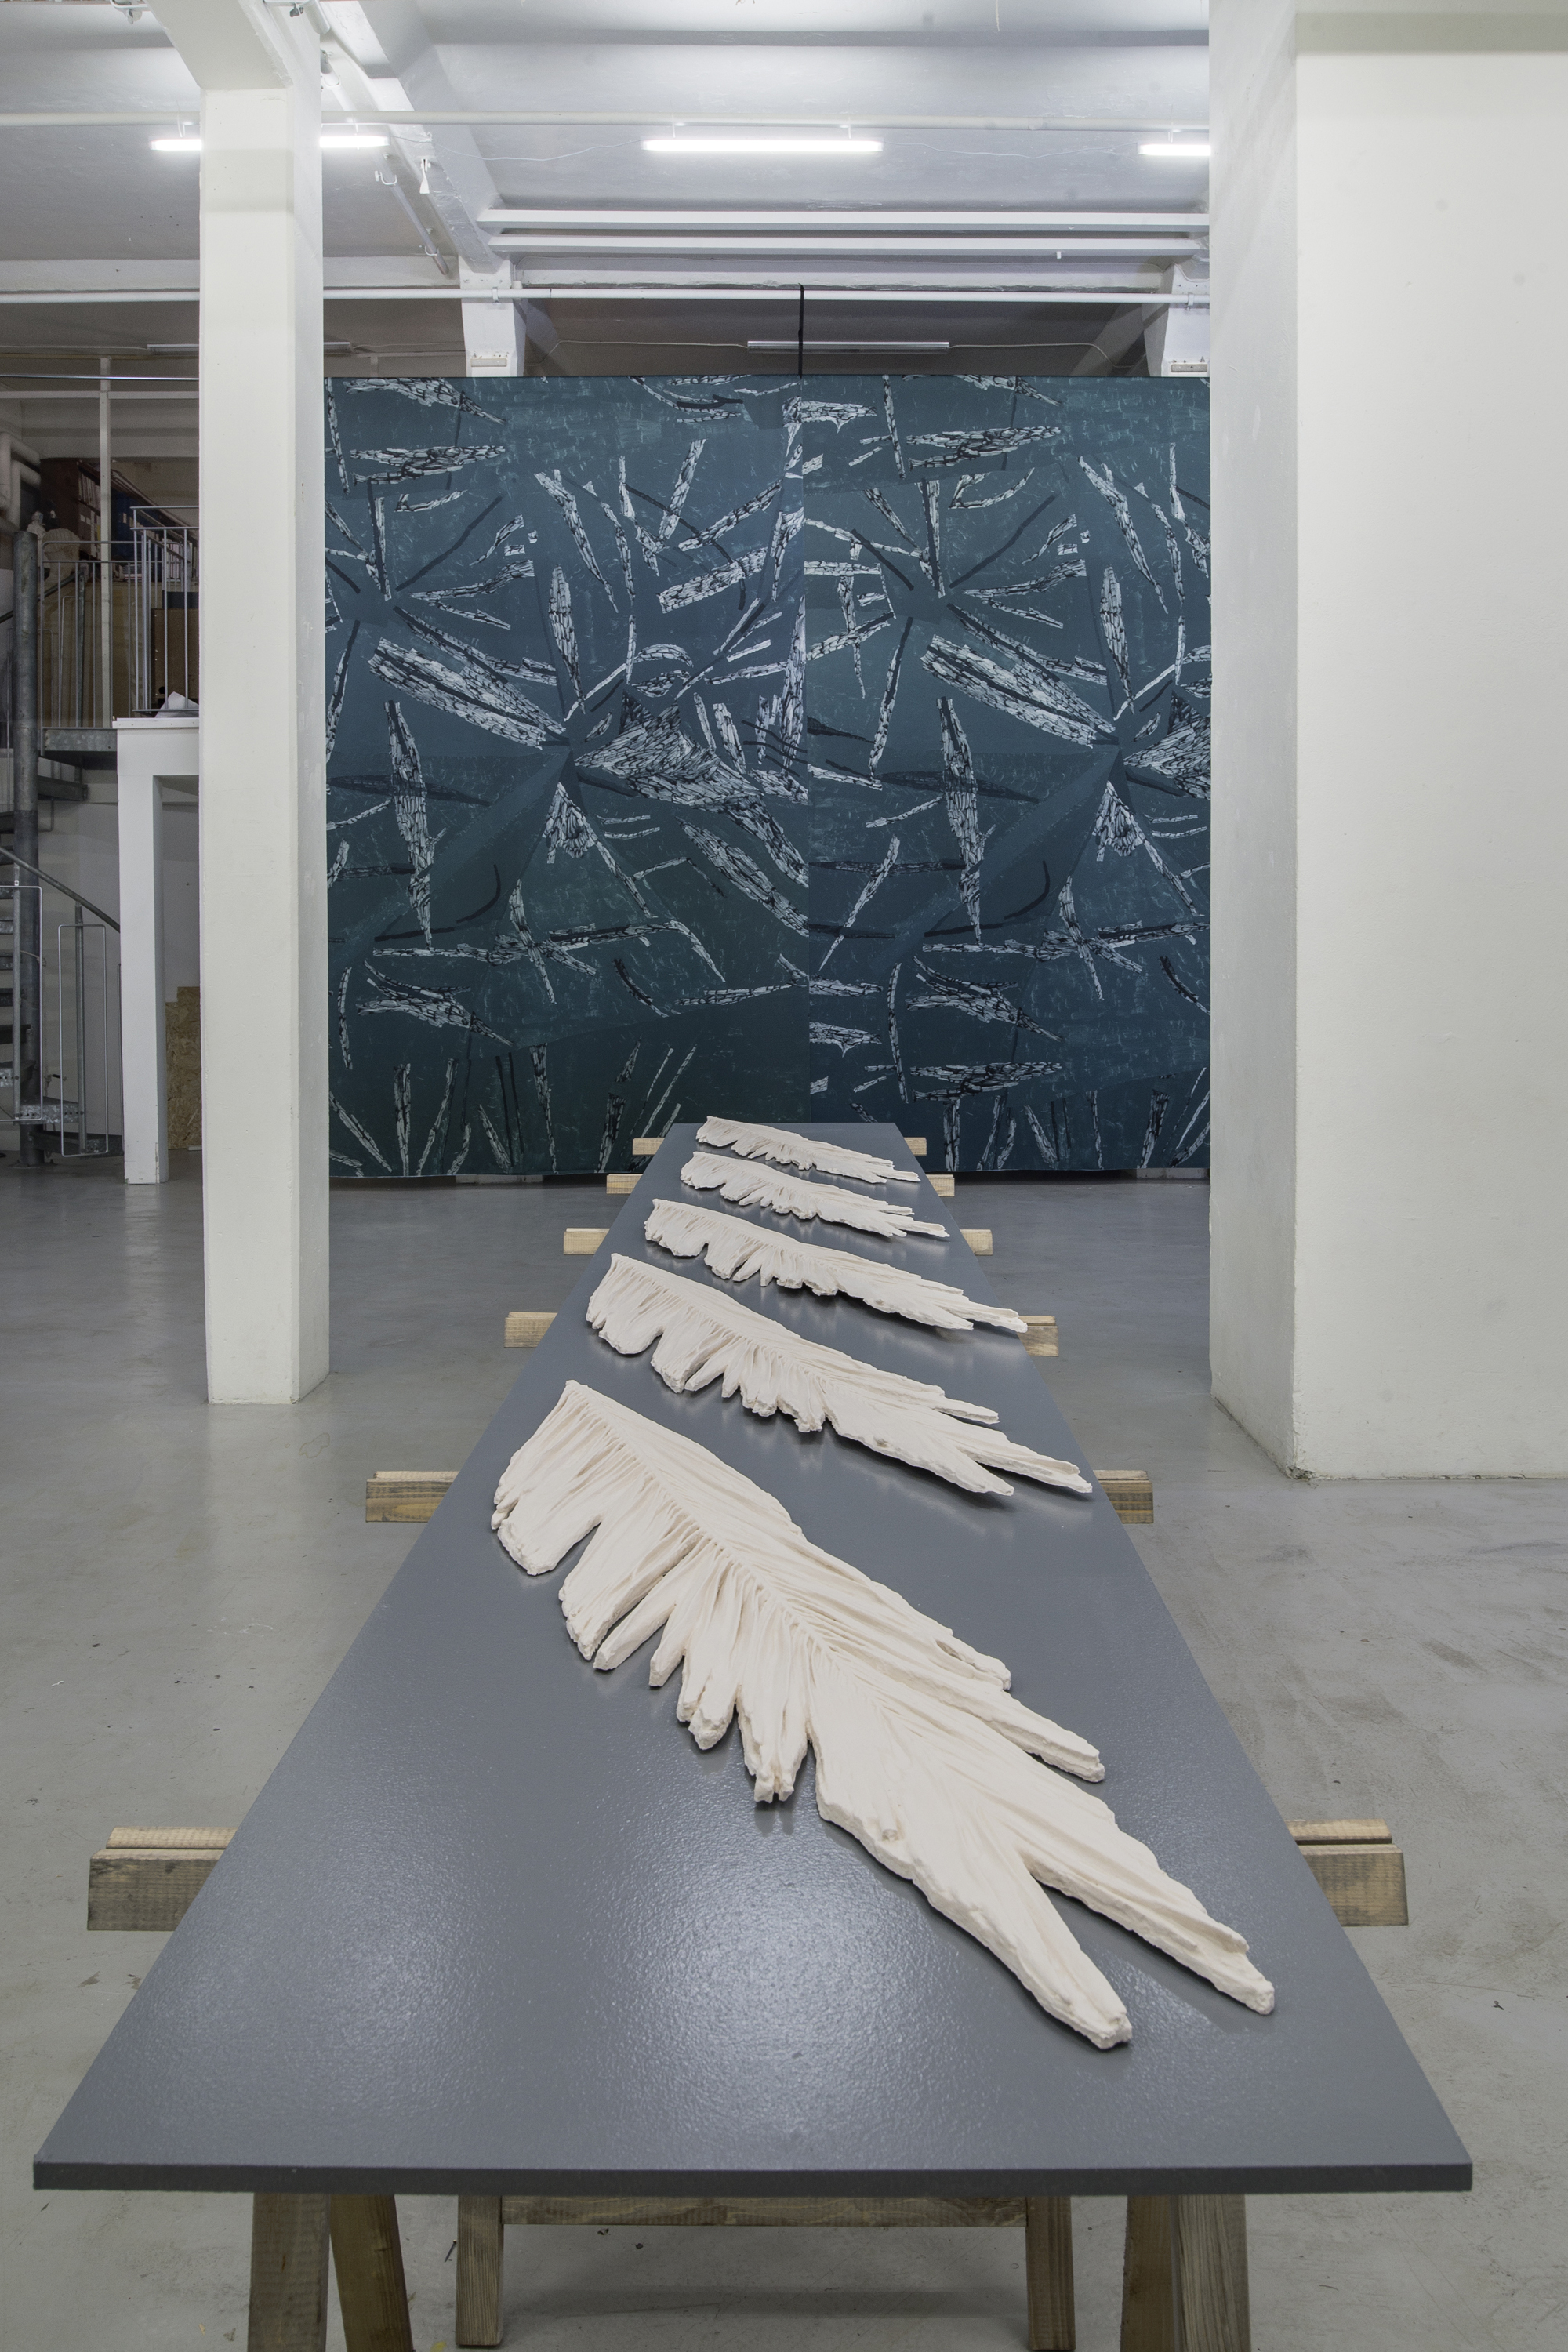 MCMXII (2017-2018), 123 x 25 cm, jesmonite. Installation view, solo exhibition Flatbed, at 3:e Våningen, Gothenburg.